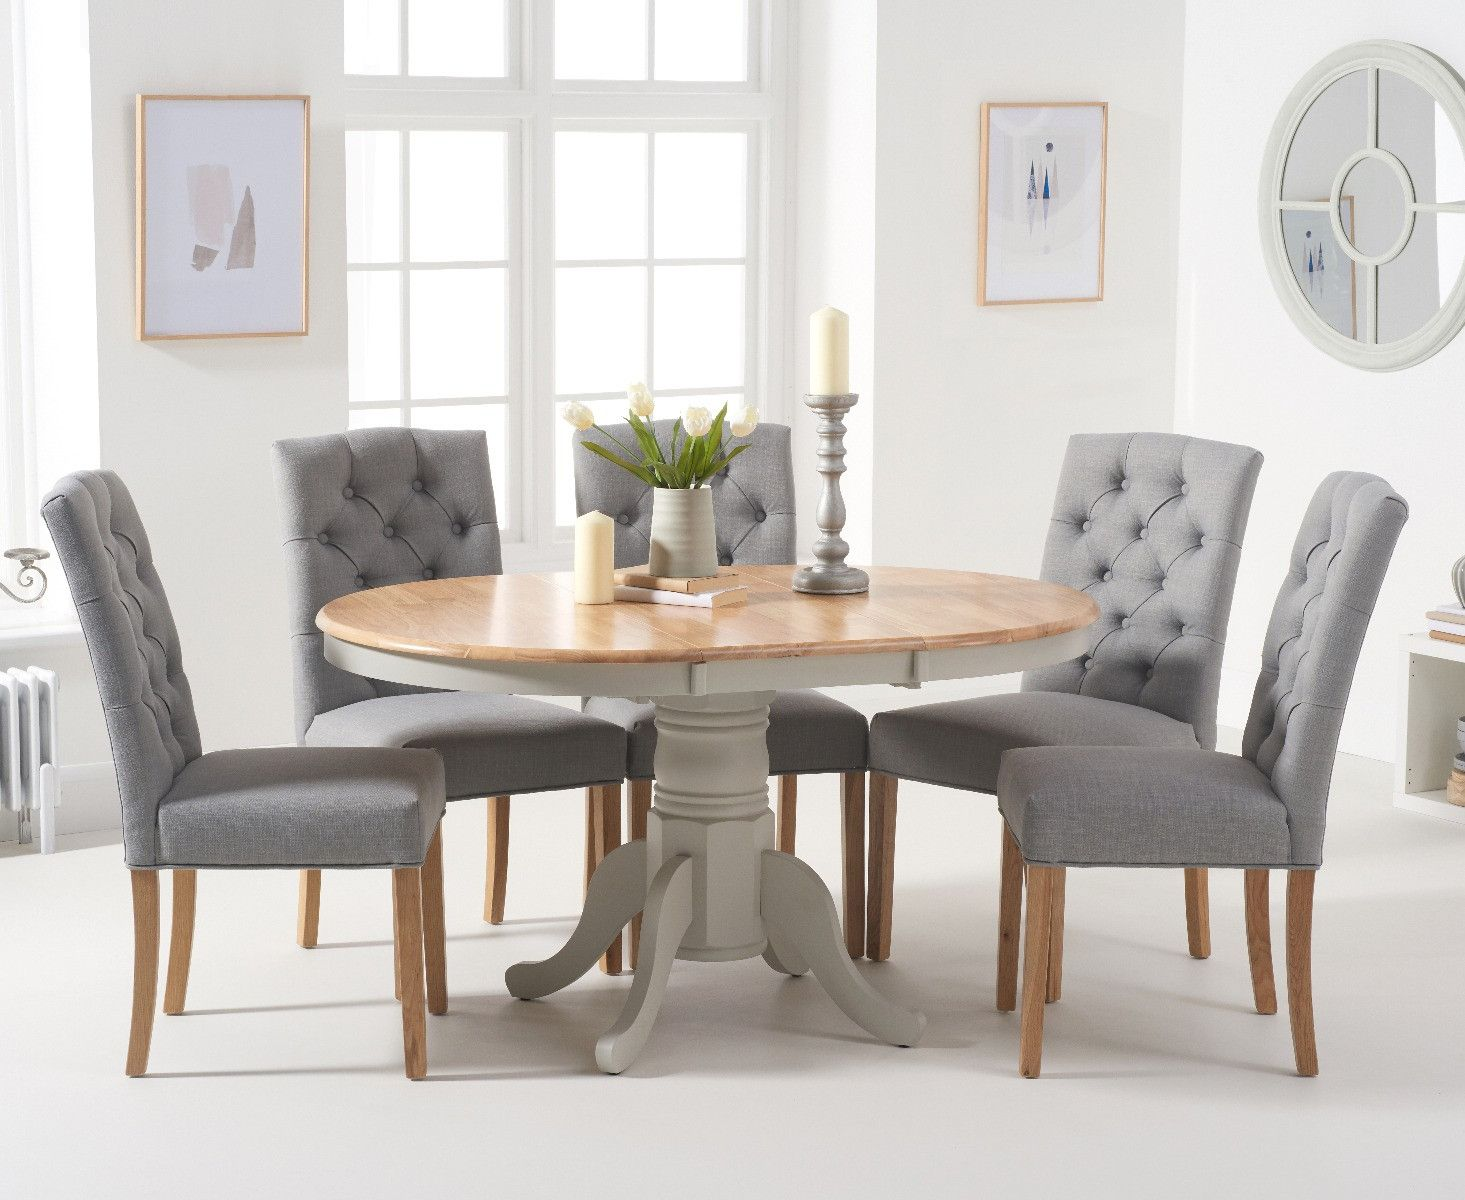 39++ Circular extending dining table and chairs Inspiration